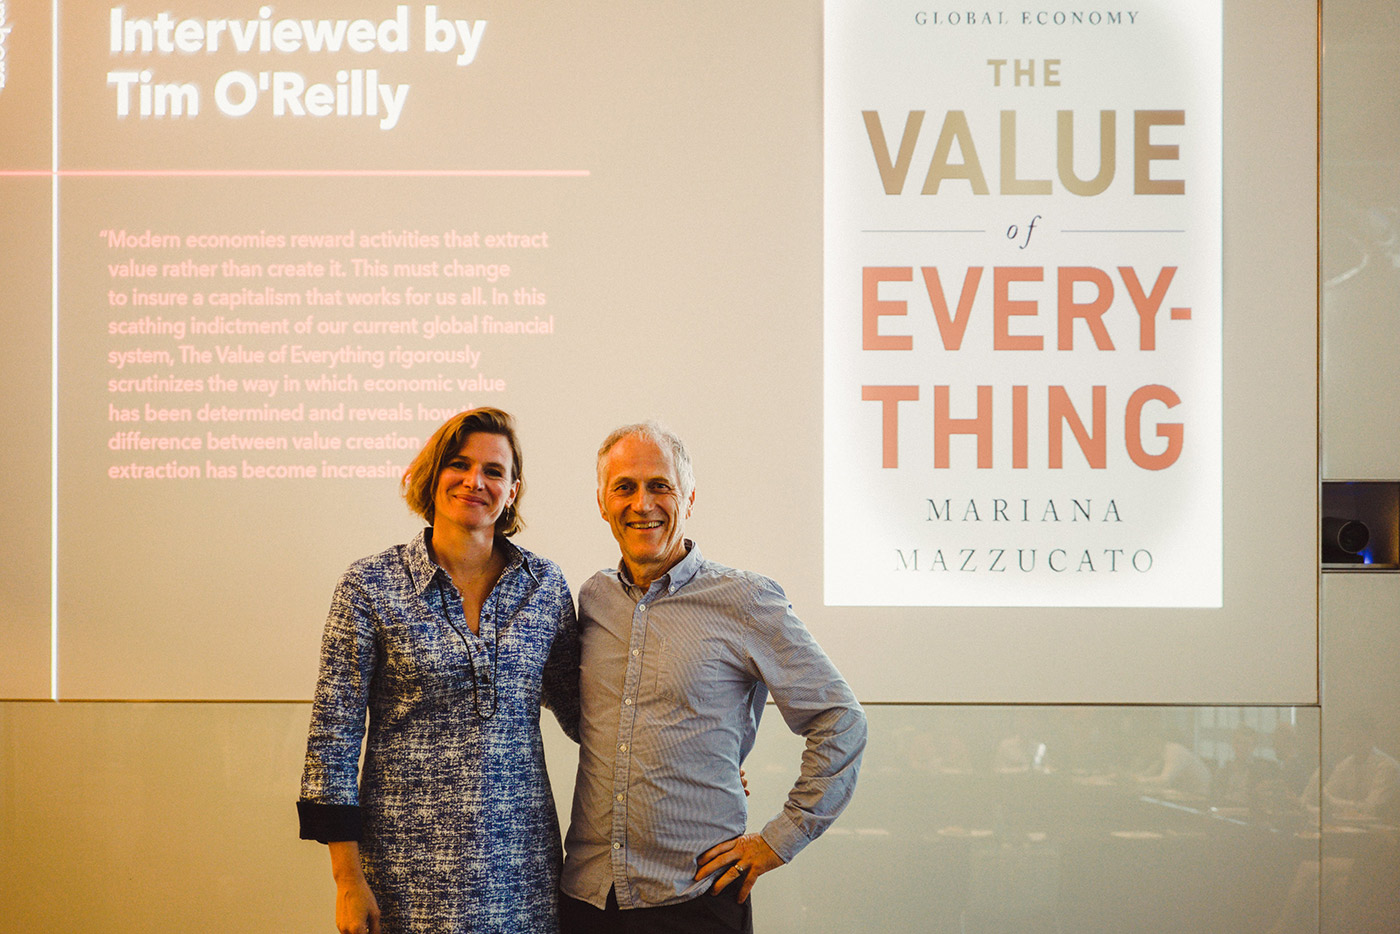 Mariana Mazzucato and Tim O'Reilly